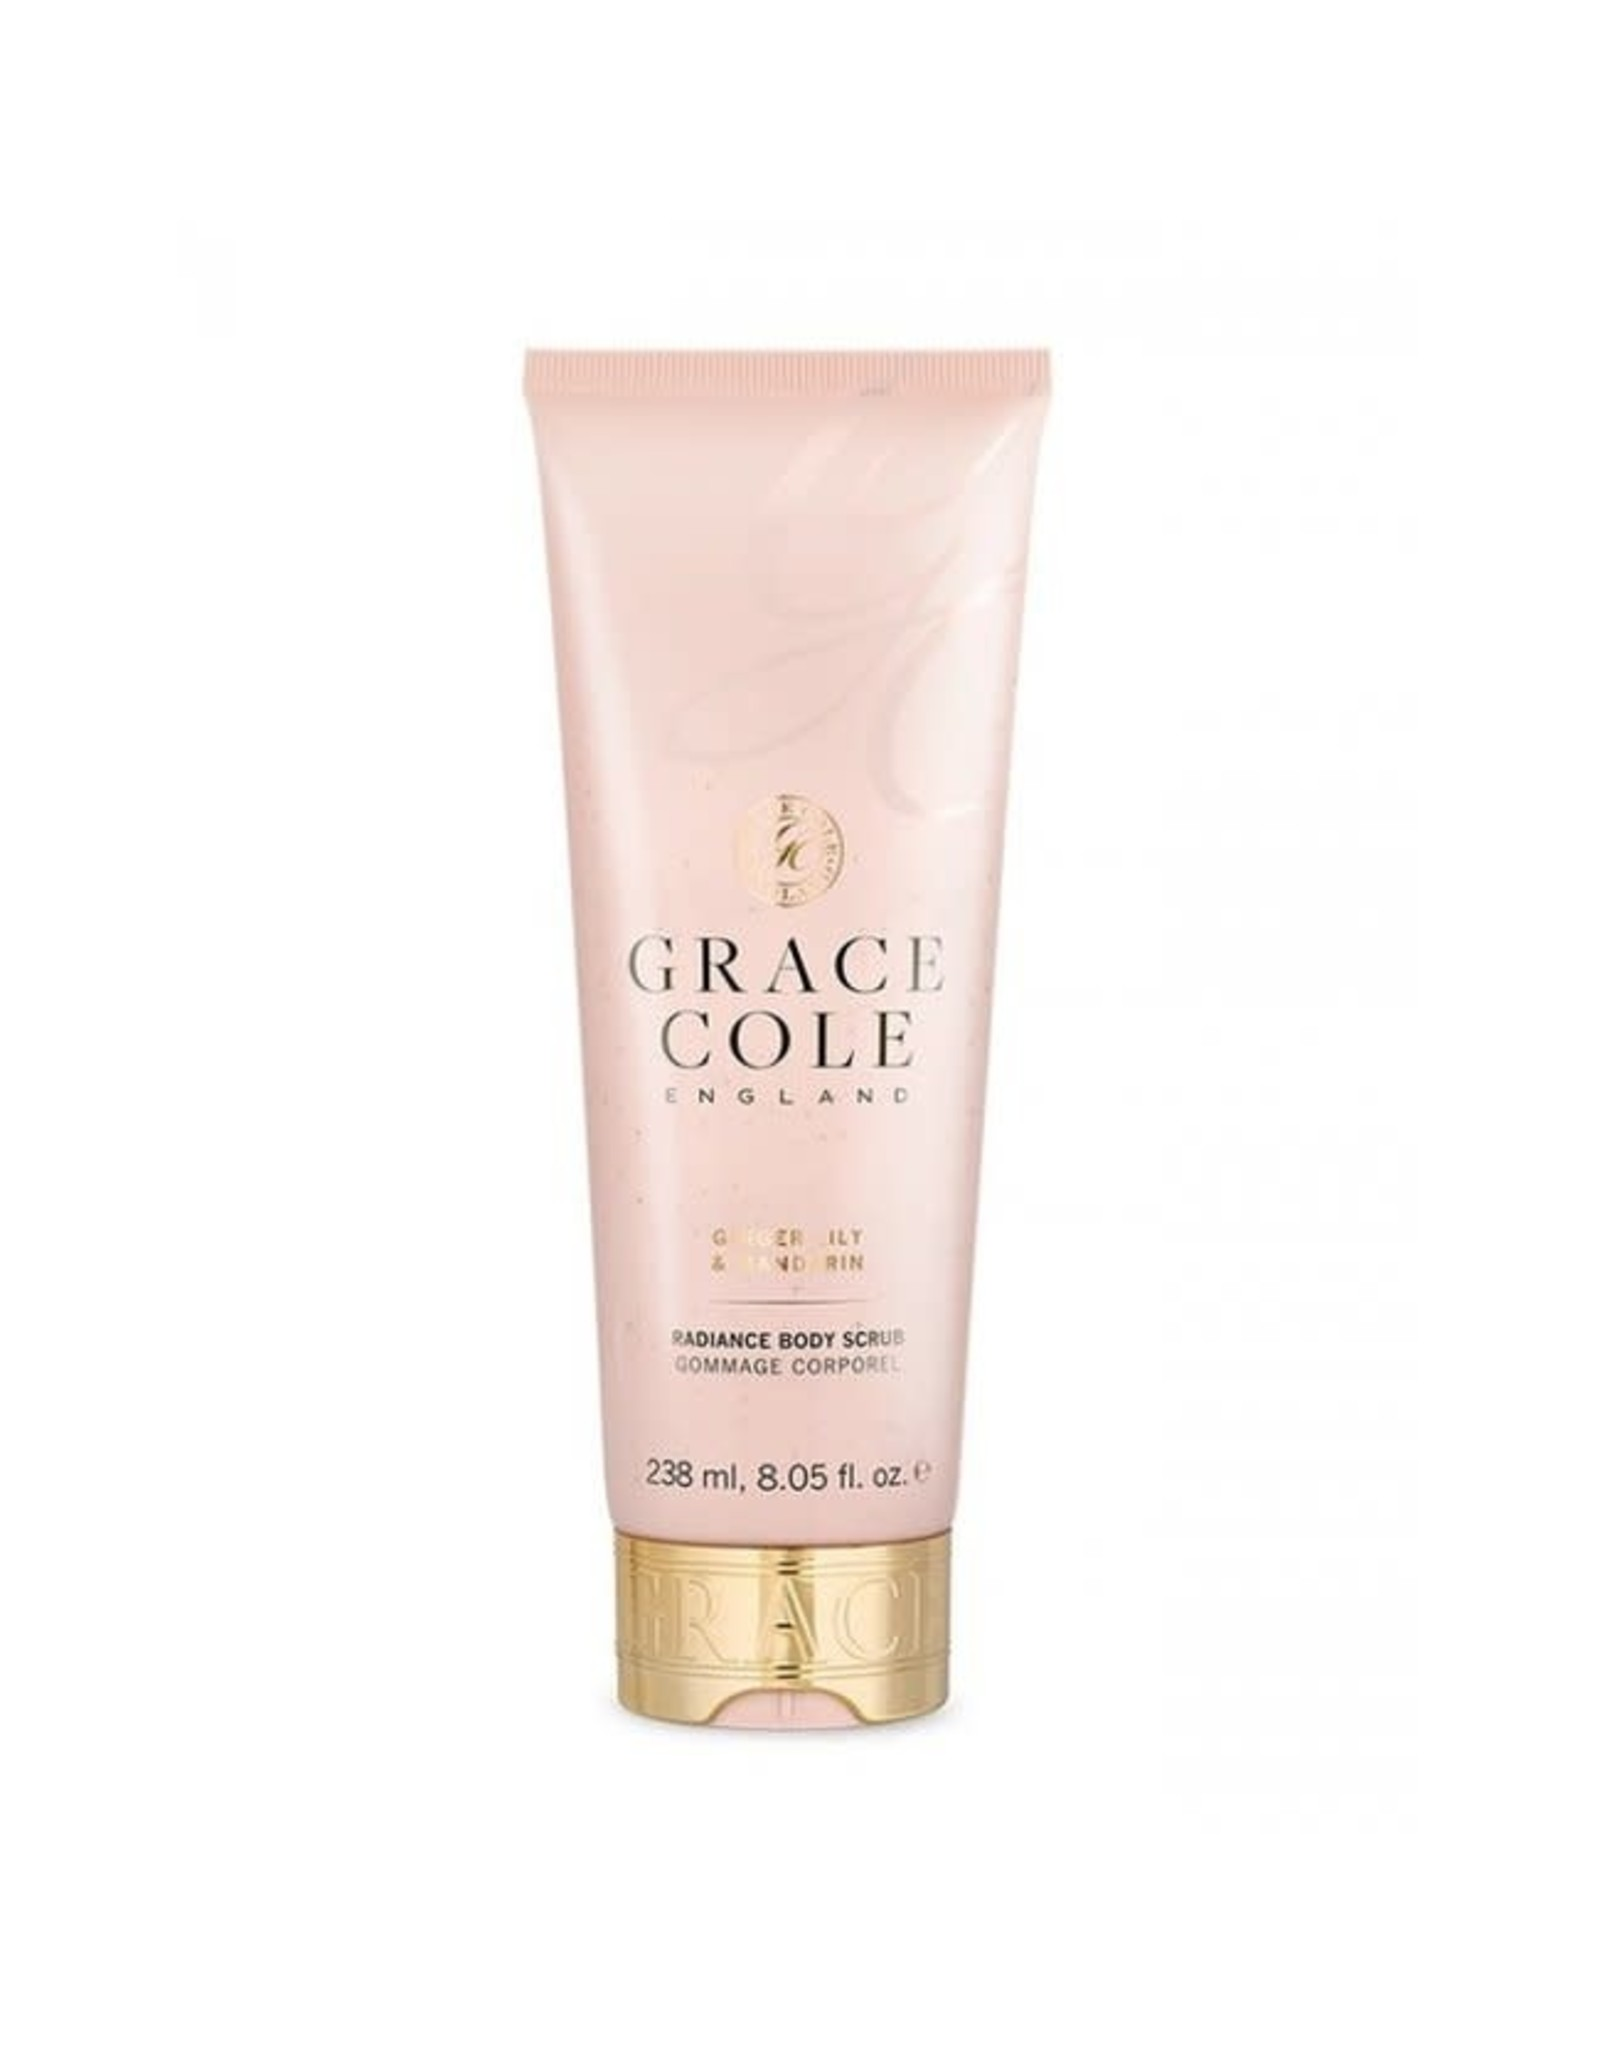 Grace Cole Body Scrub Ginger Lily&Mandarin